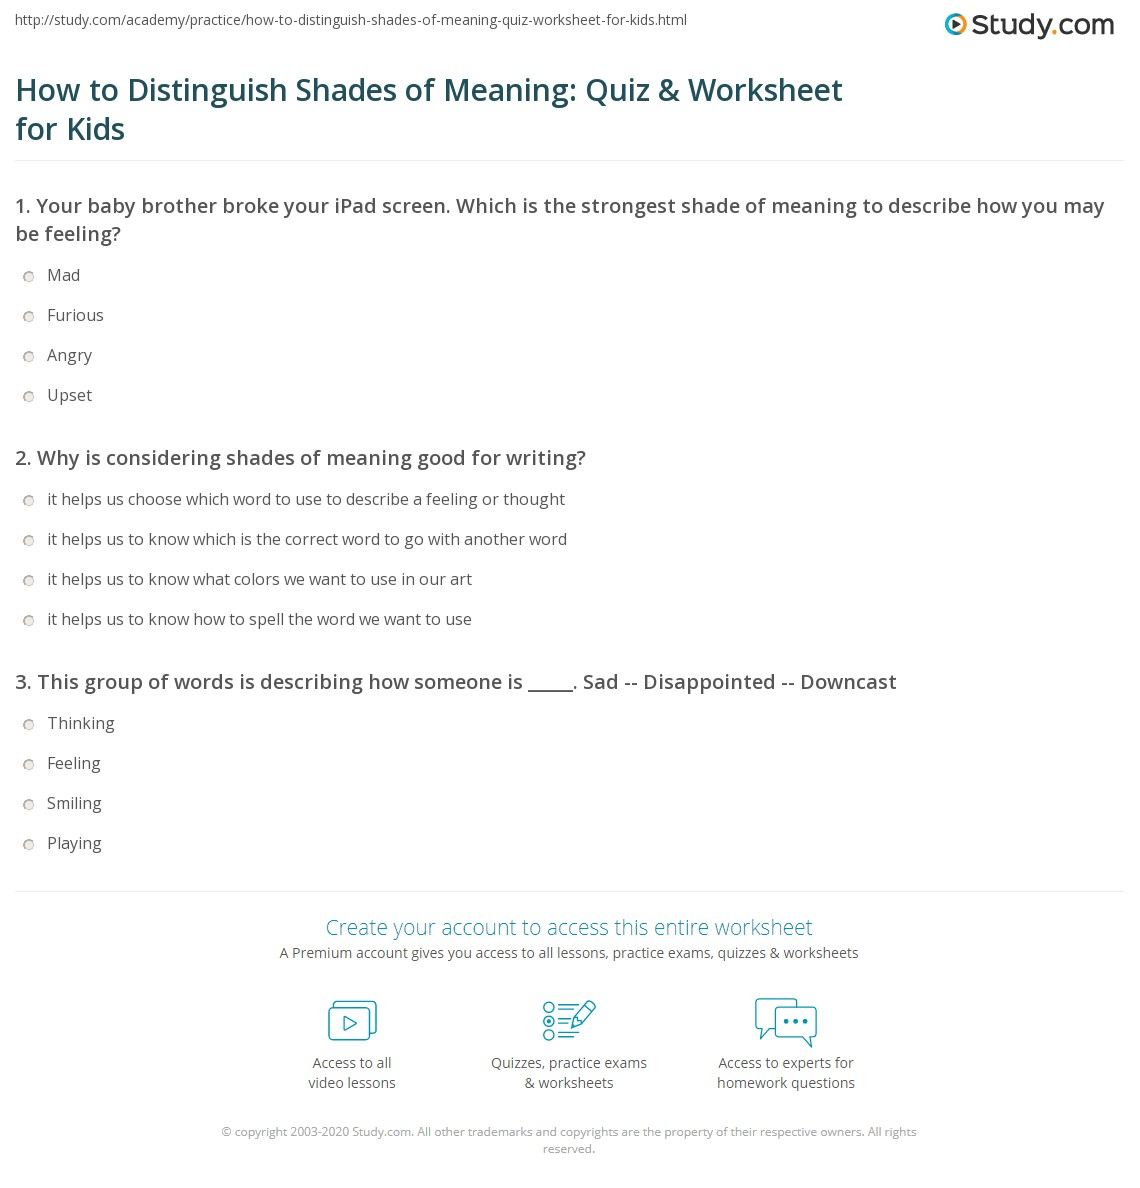 Shades Of Meaning Worksheets - The Best and Most Comprehensive ...